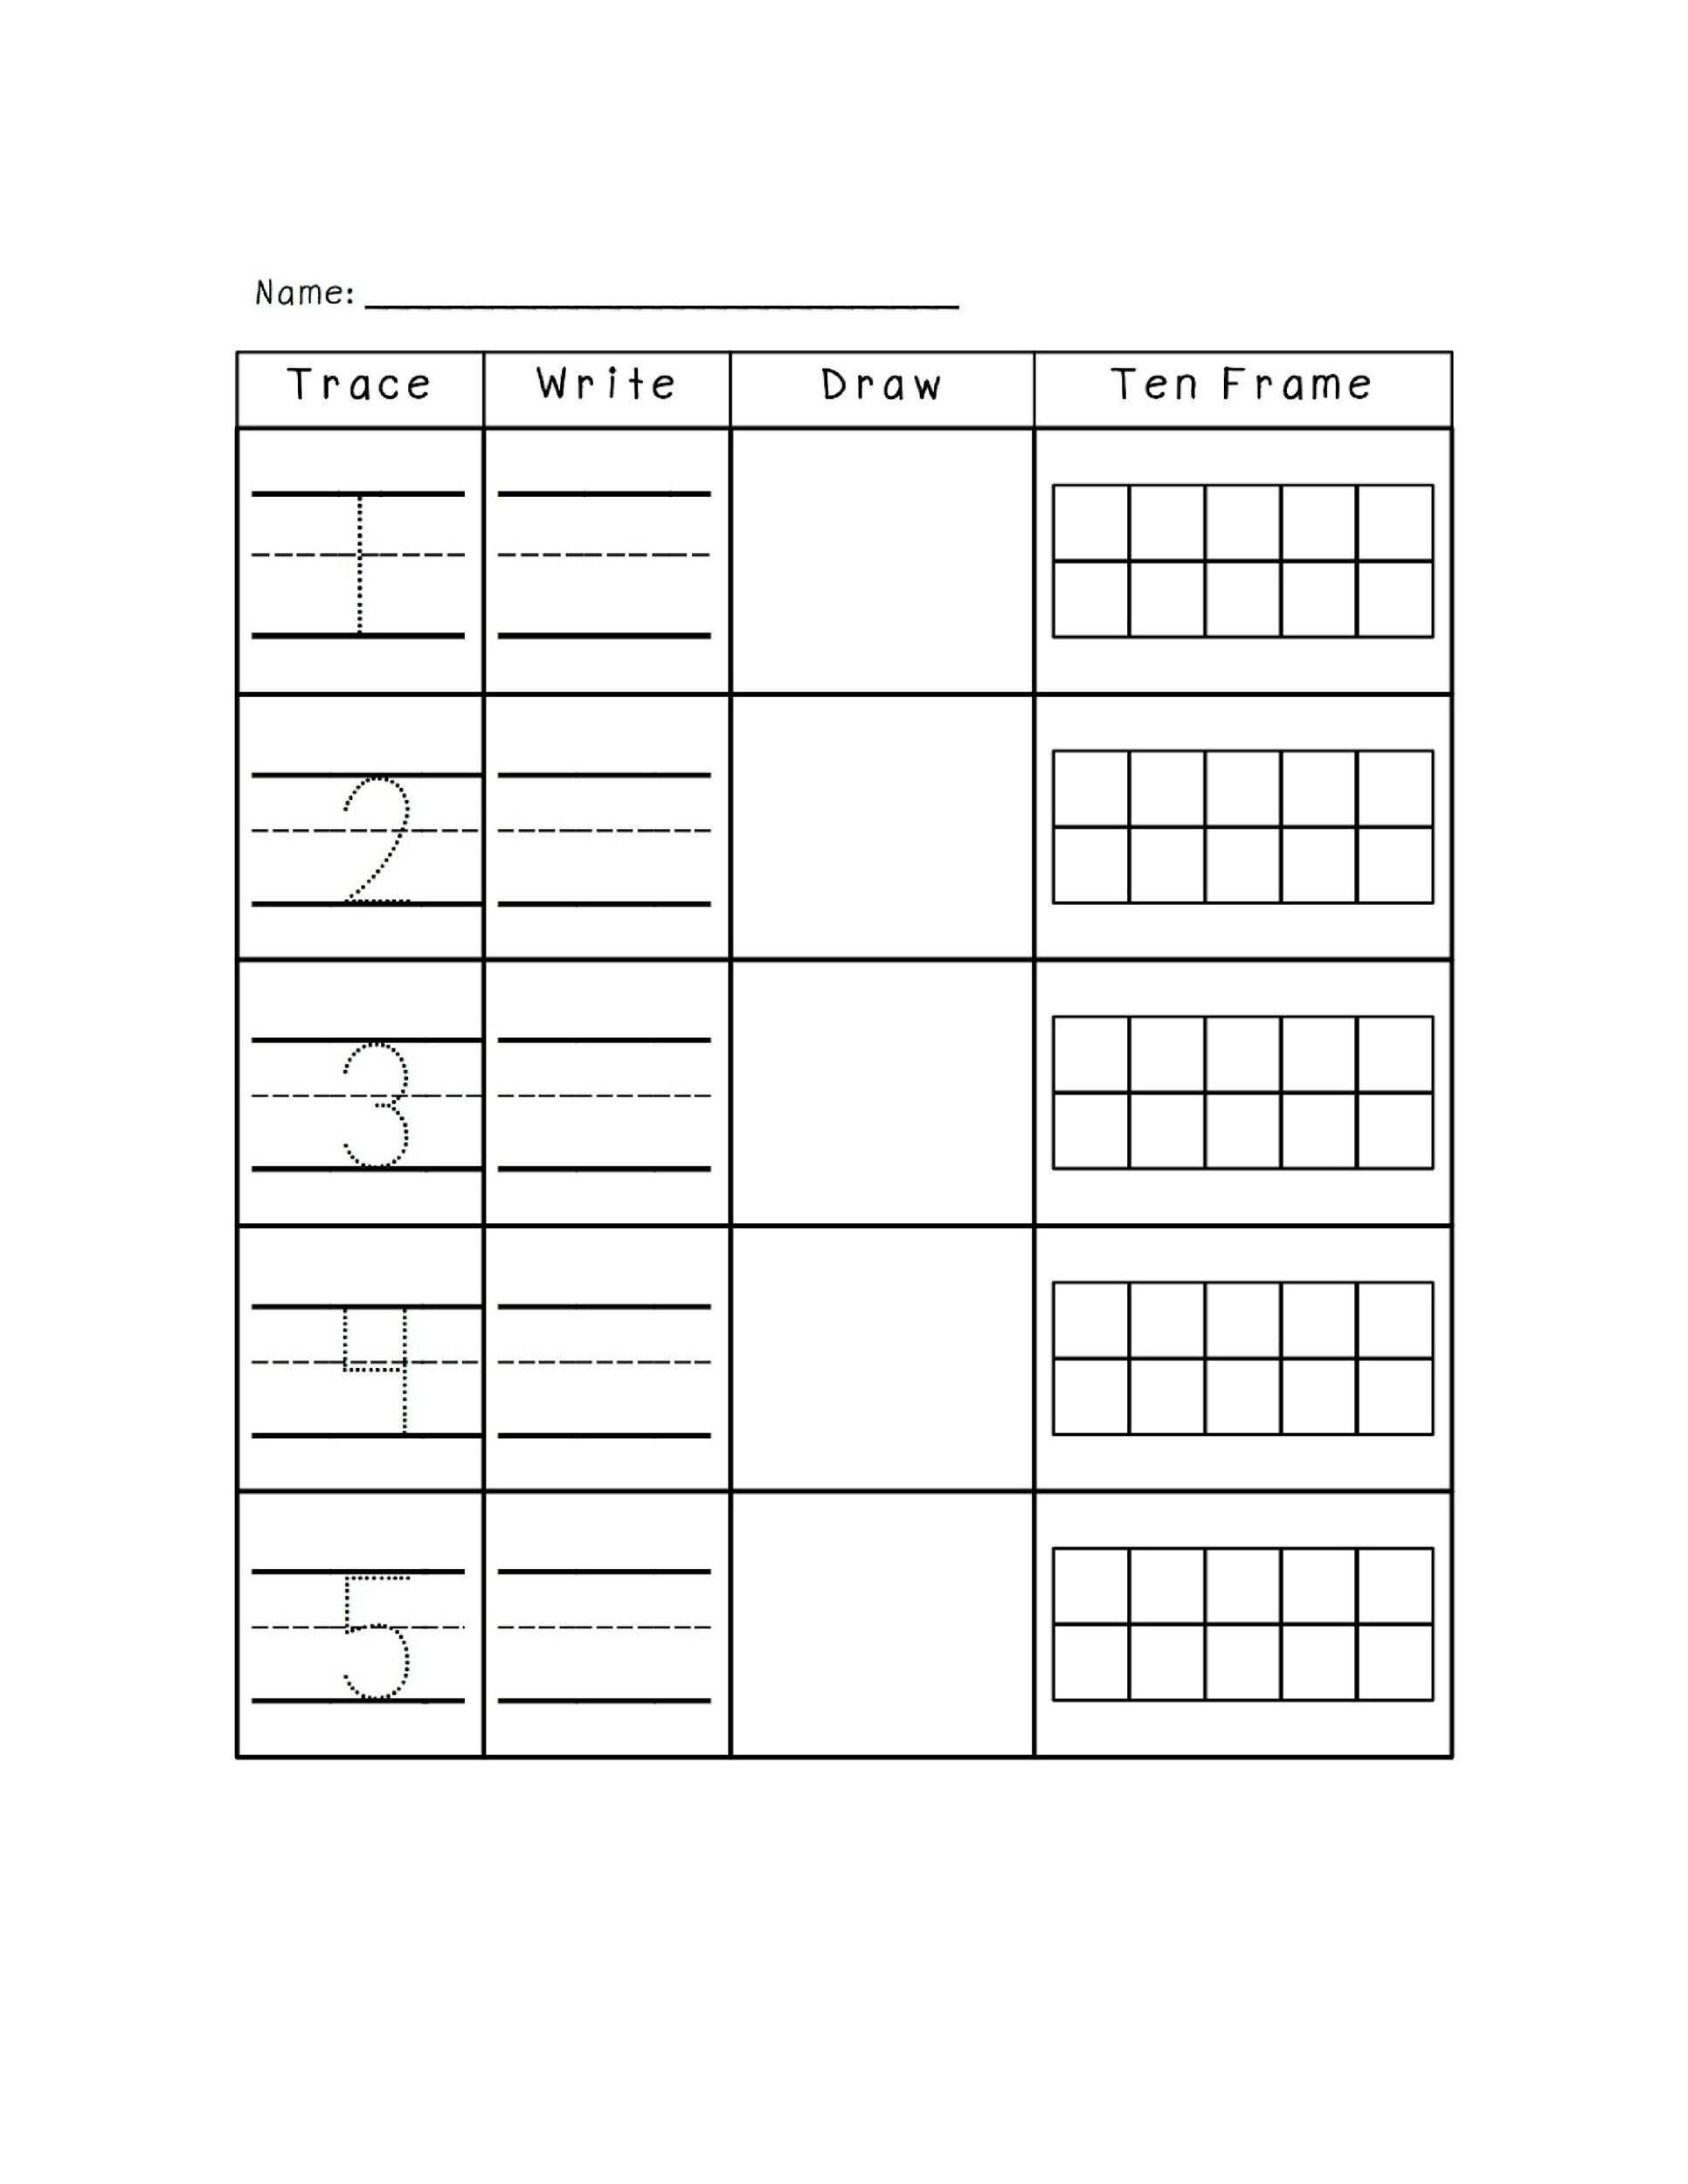 36 Printable Ten Frame Templates (Free) ᐅ Template Lab